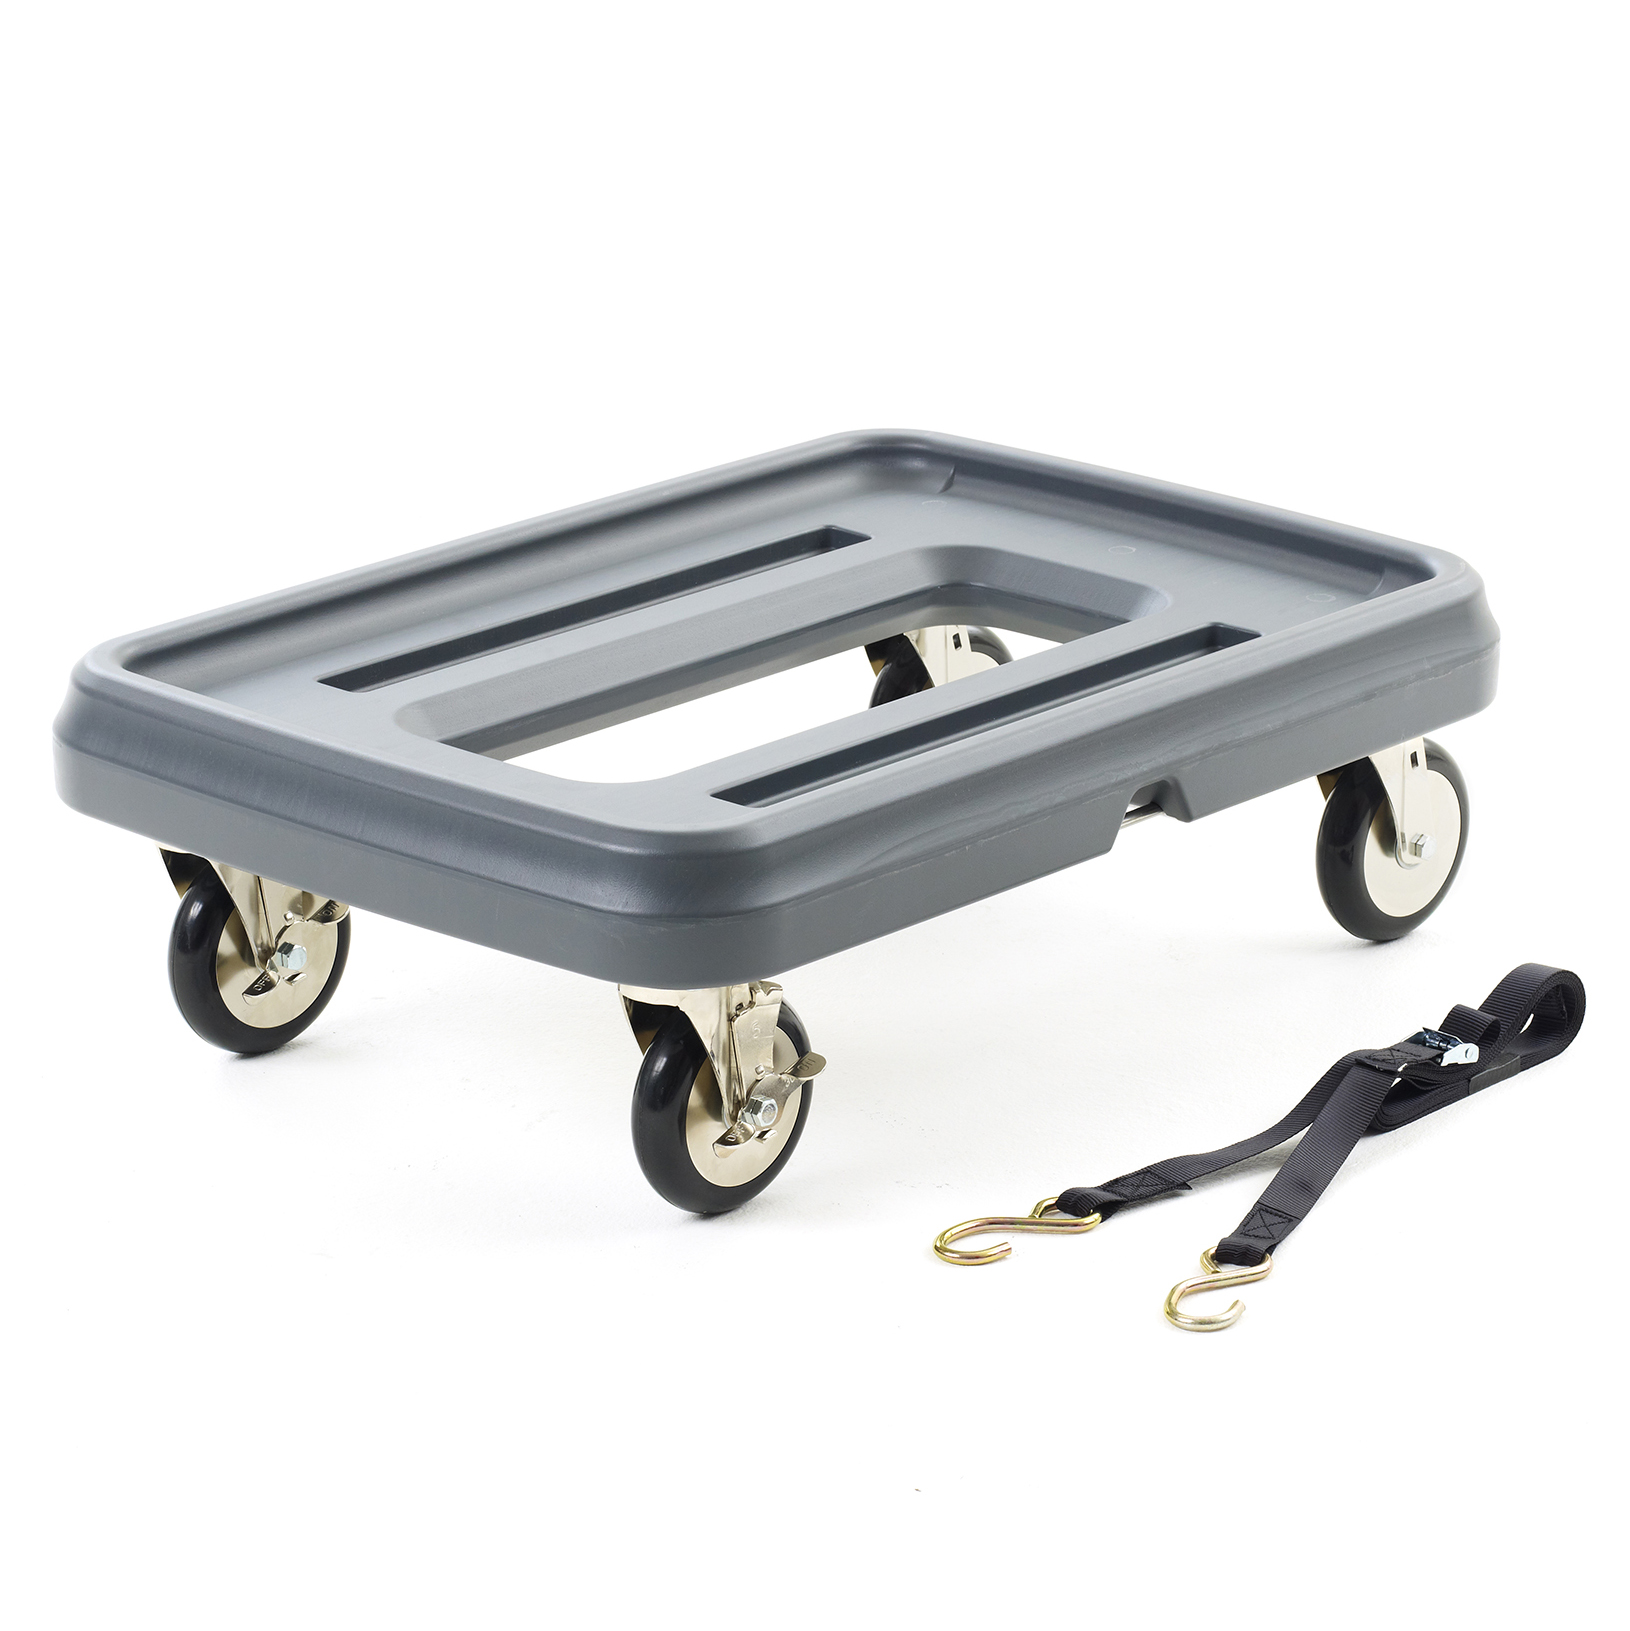 8000-15 Metro MLD1 food carrier dolly